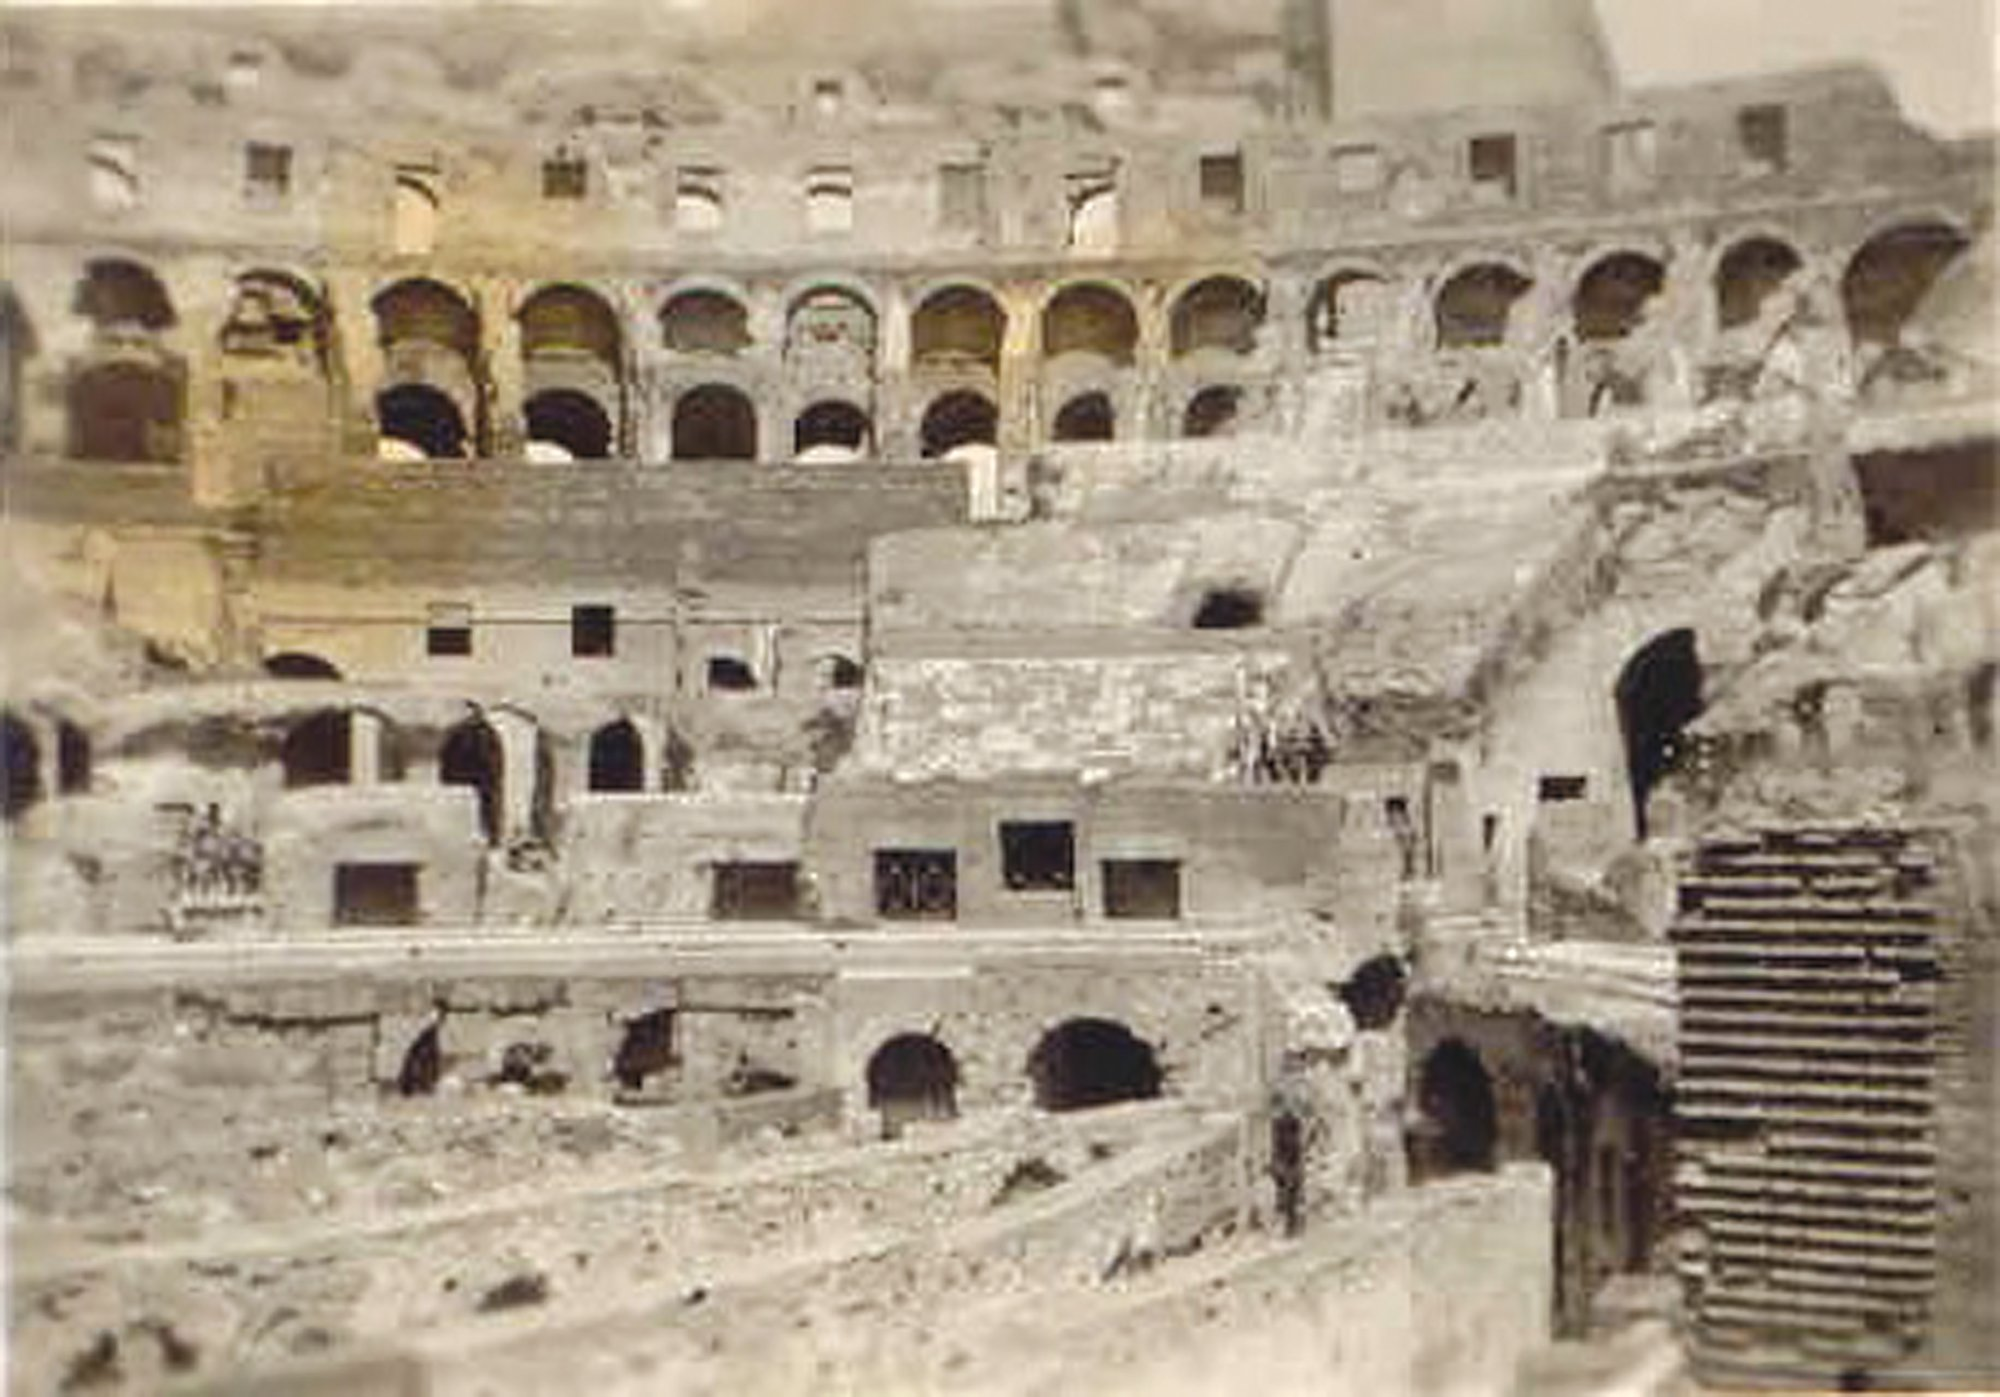 The 178th visited the Roman Colosseum.